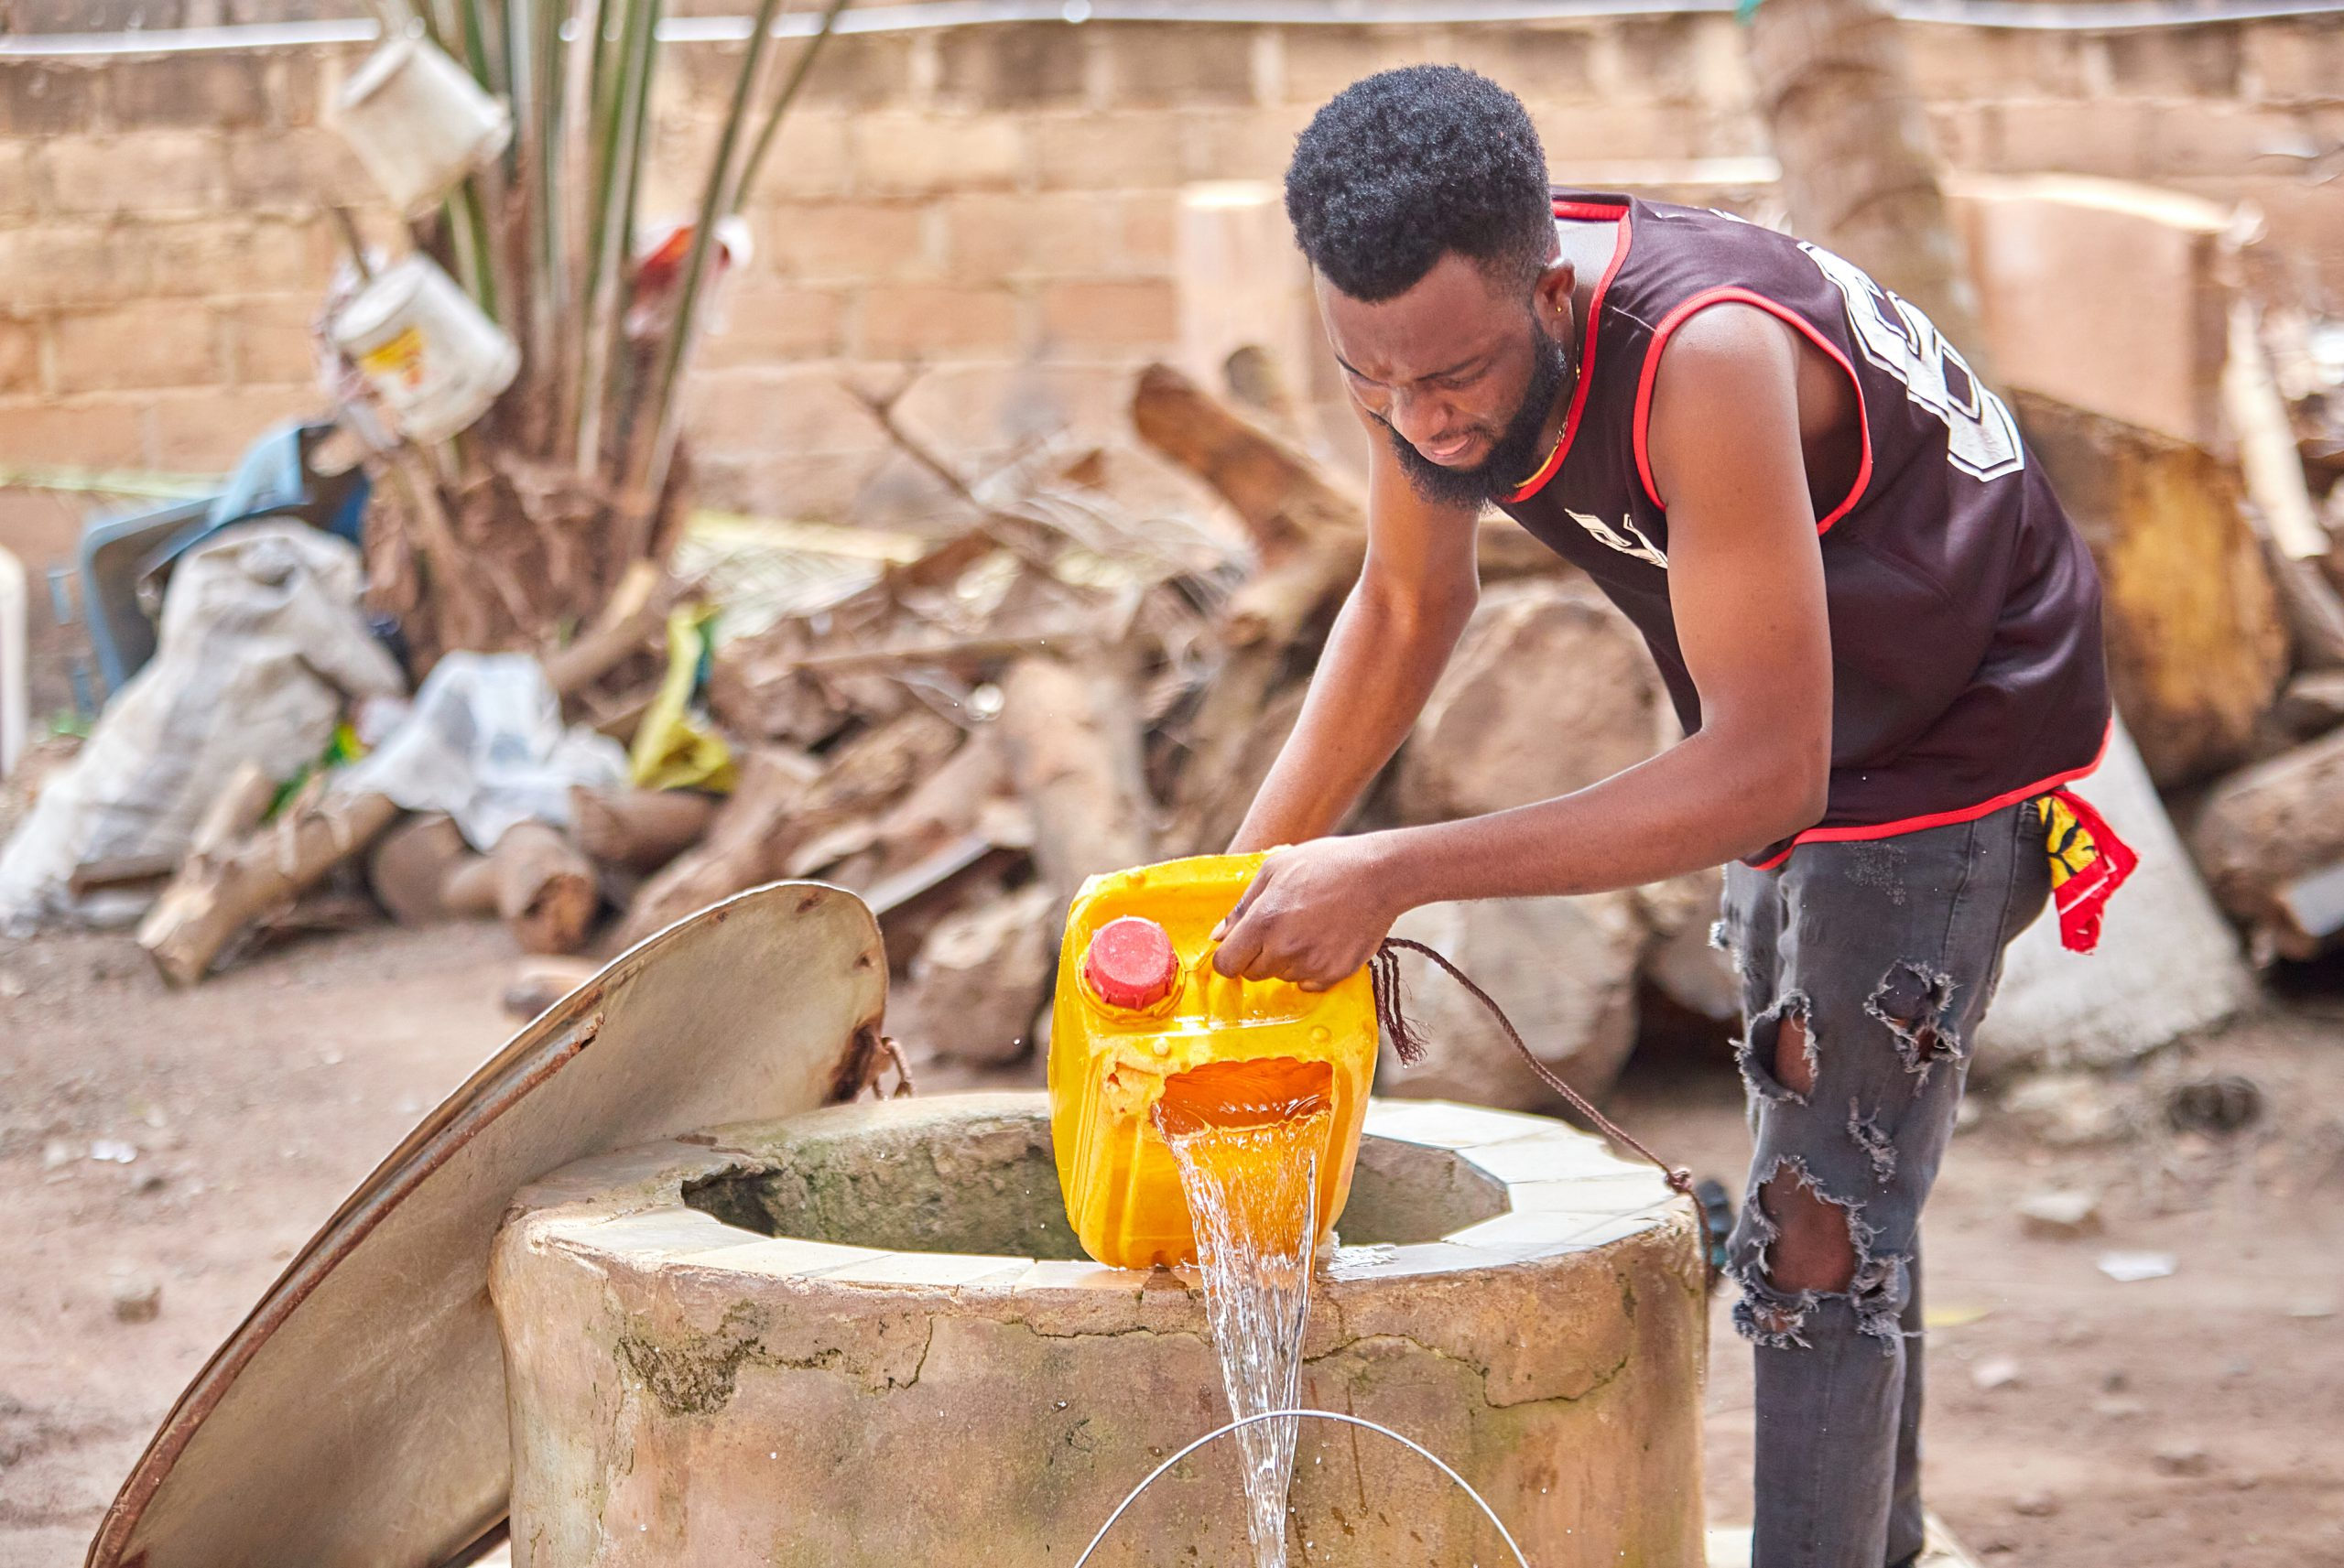 A Ghanaian man taking water from the well.